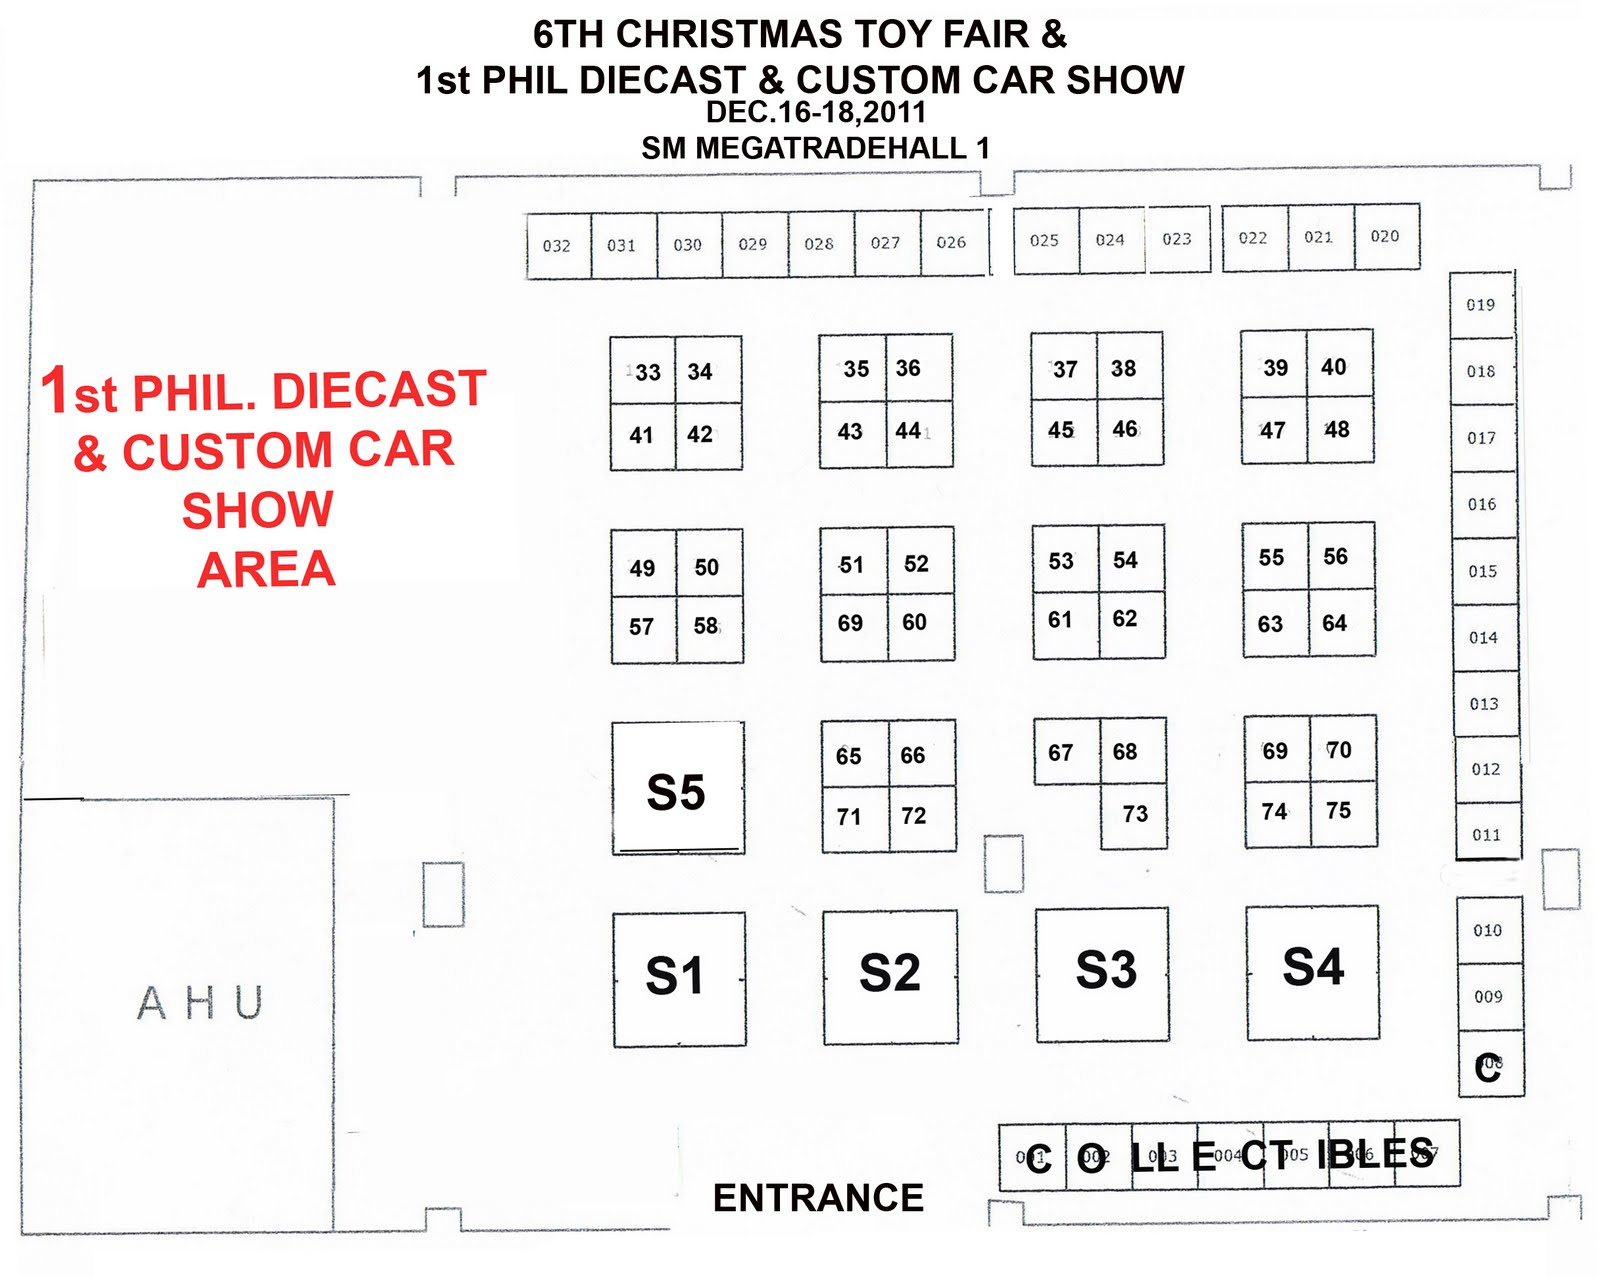 xmas-toy-fair-2011-floor-plan